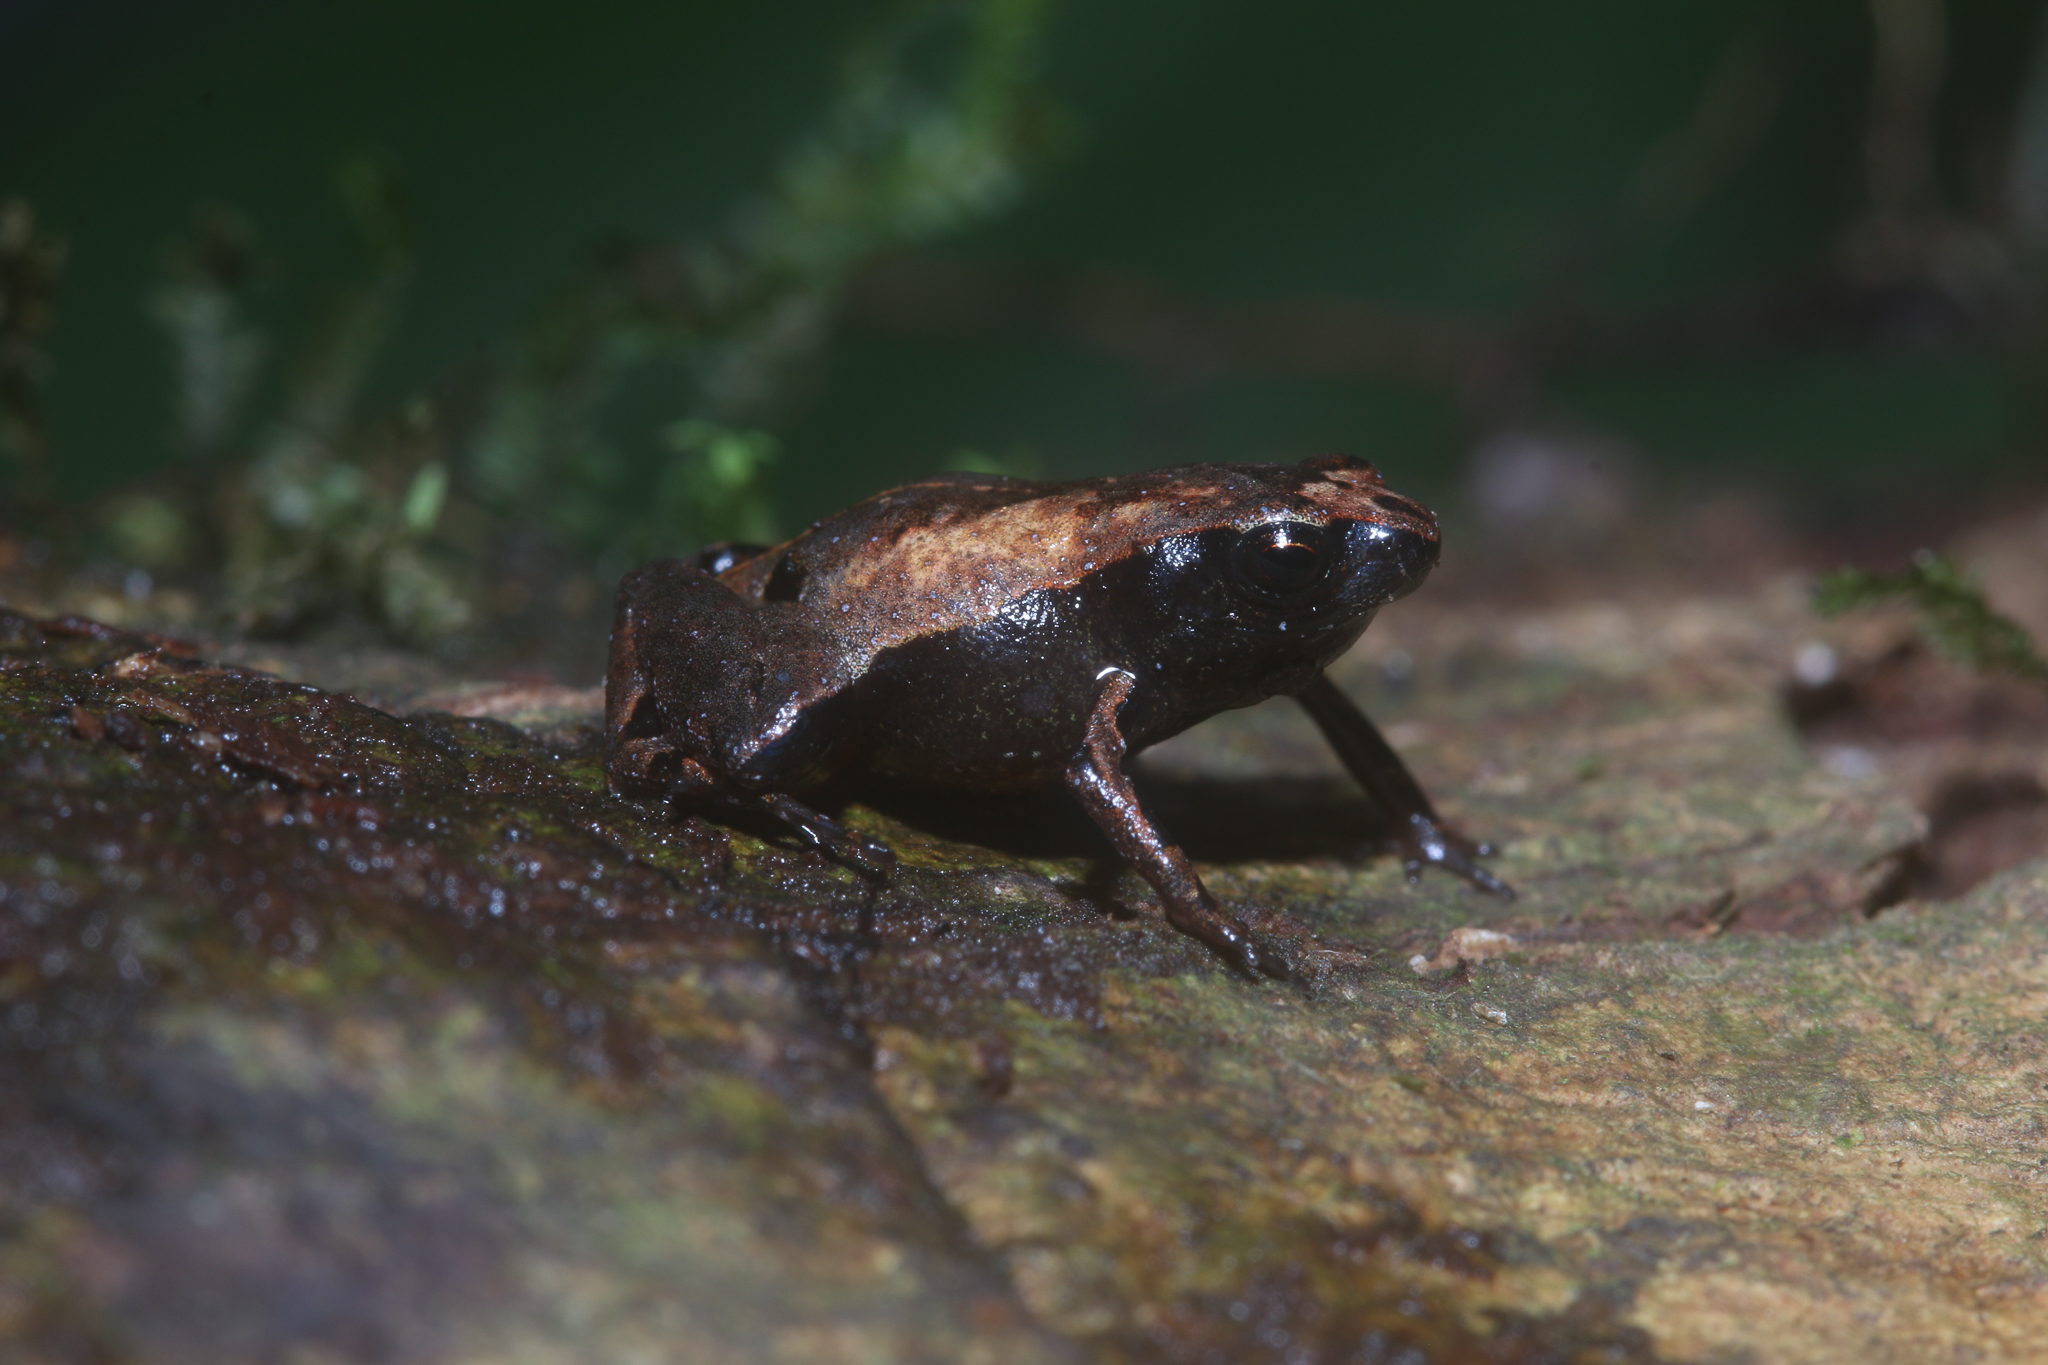 A potential new species of terrestrial Terrarana frog in the genus Noblella, collected near Camp 2. Photo by Santiago Castroviejo